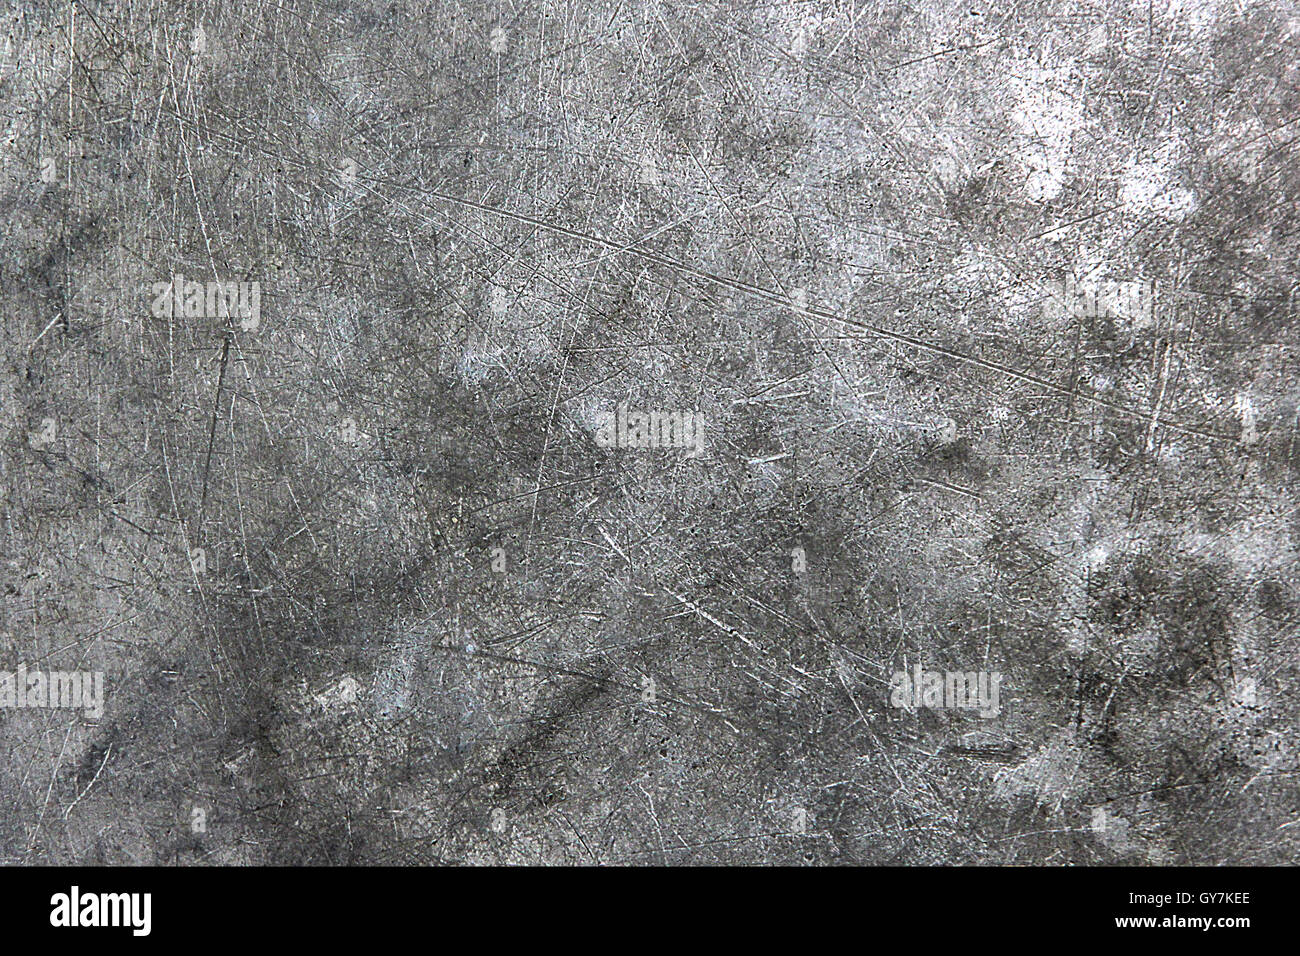 chrome metal texture with scratch. look like cement or concrete texture. background and texture. Stock Photo